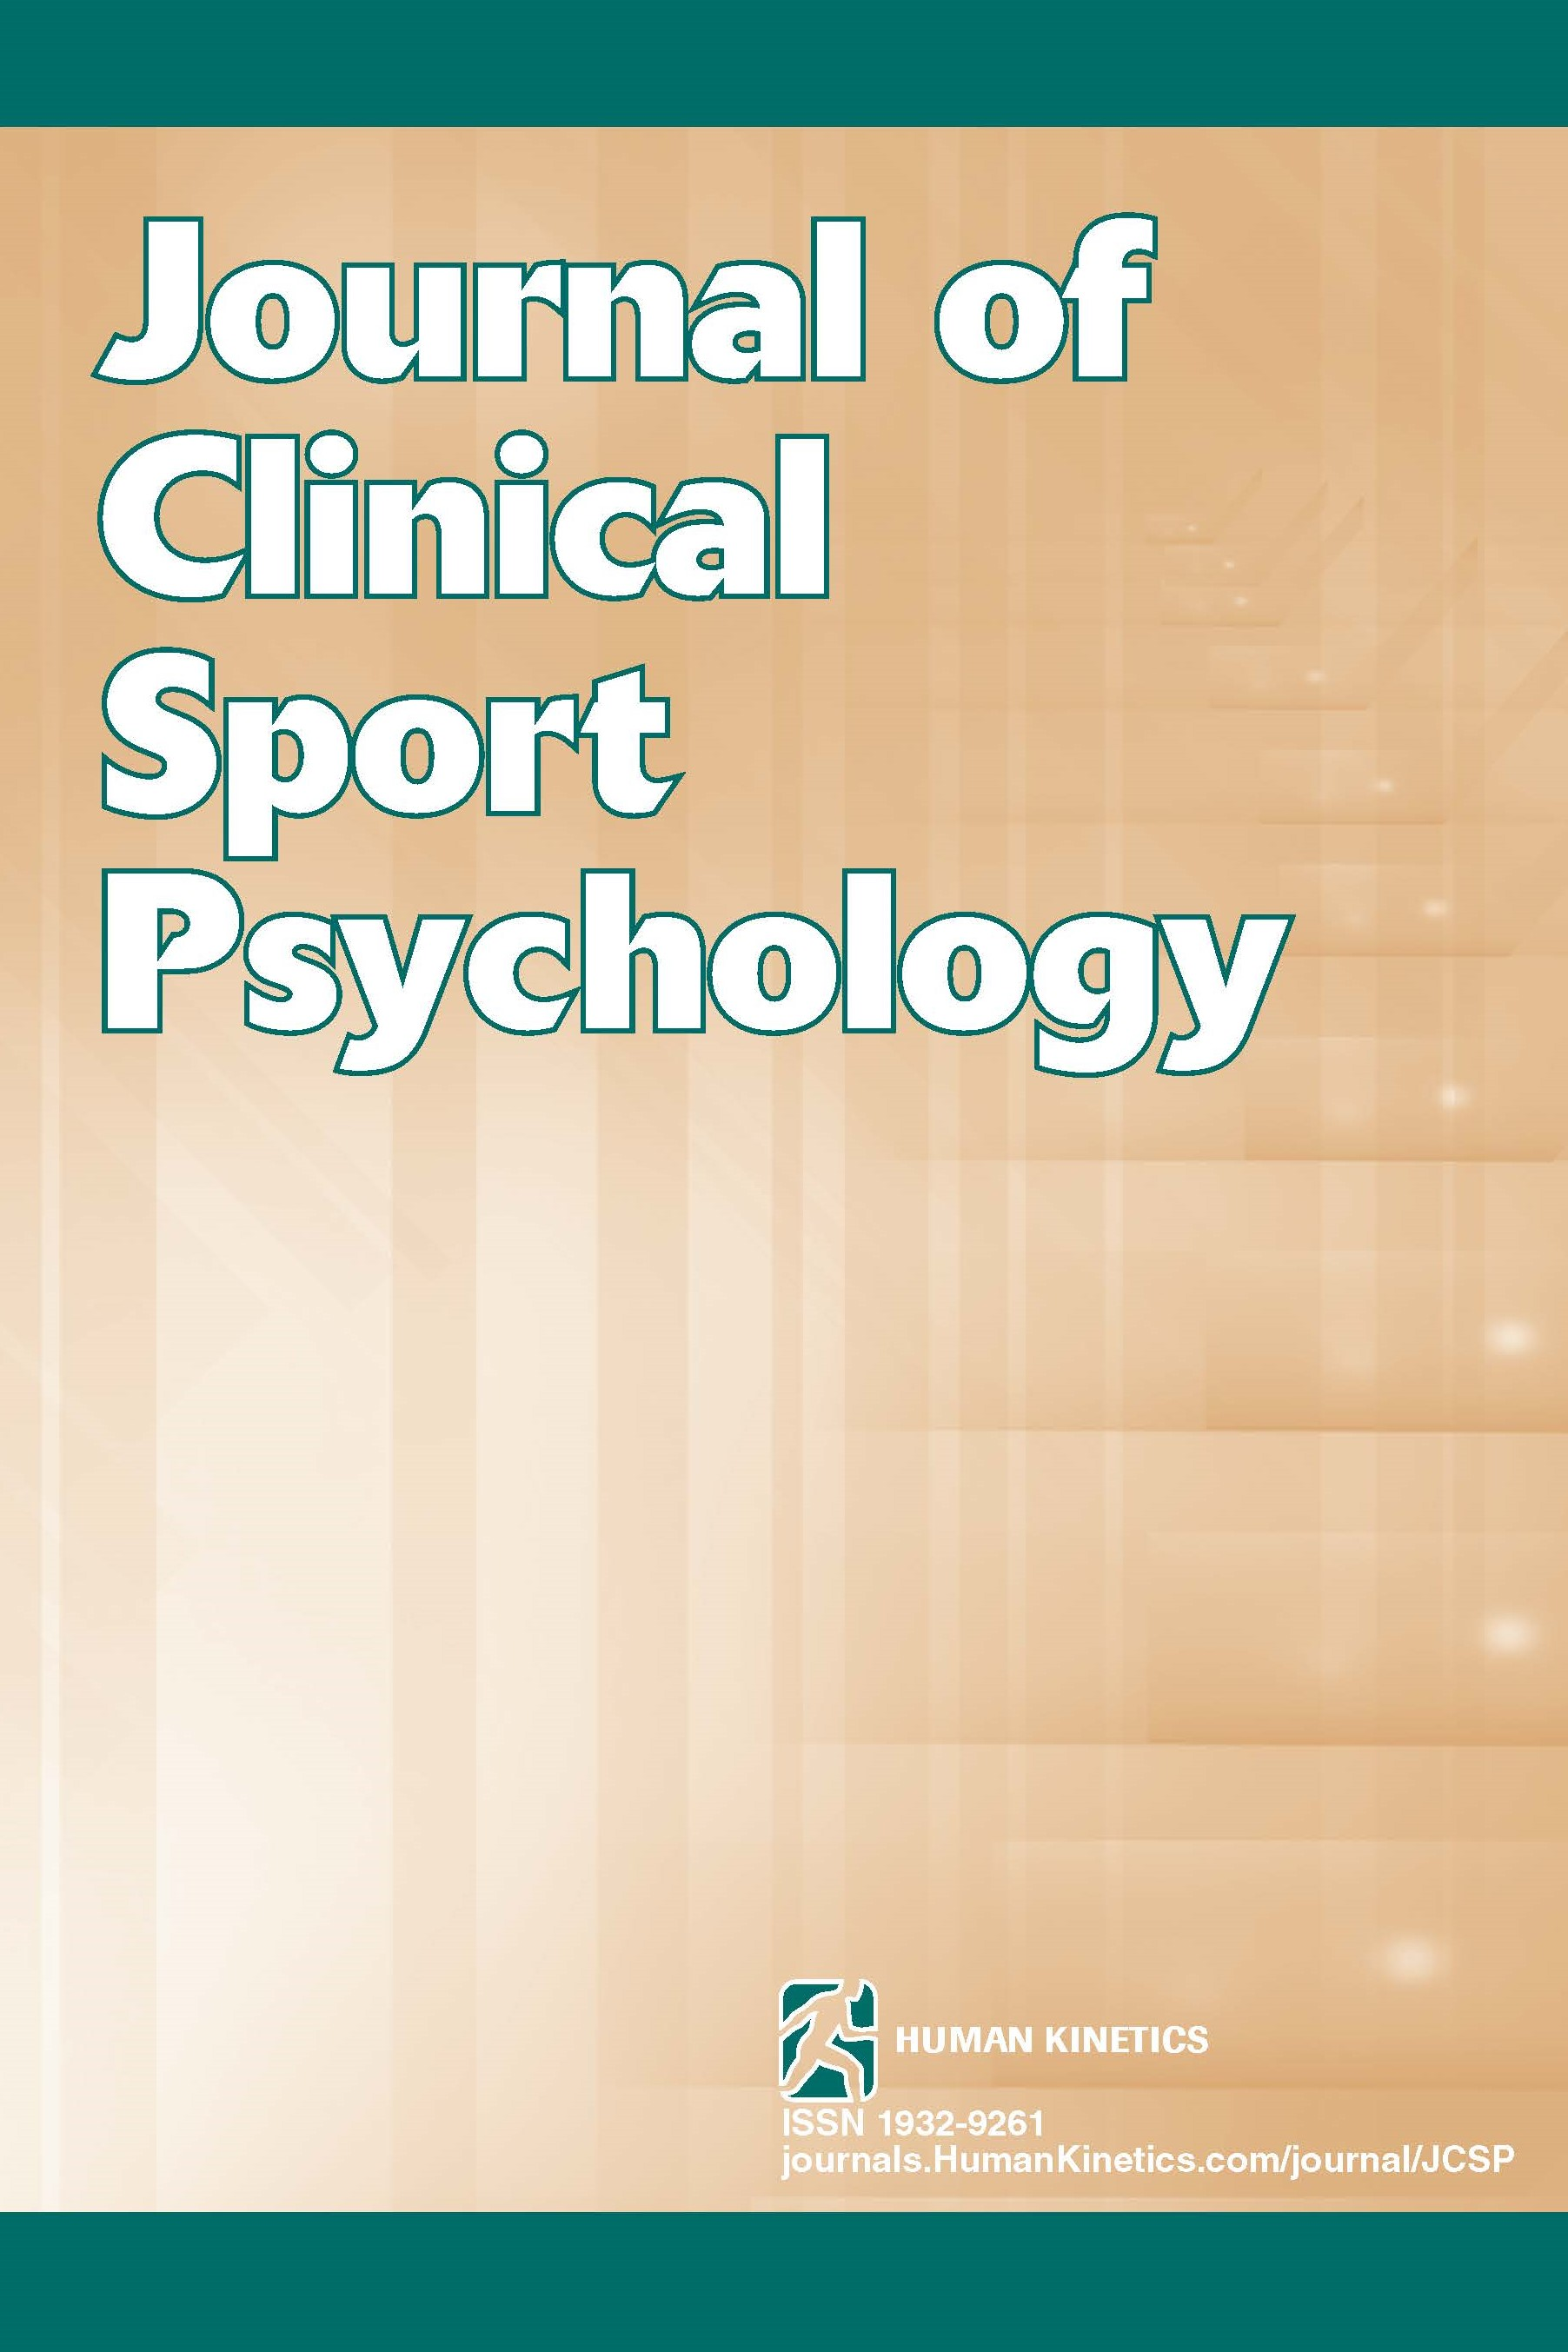 Journal of Clinical Sport Psychology